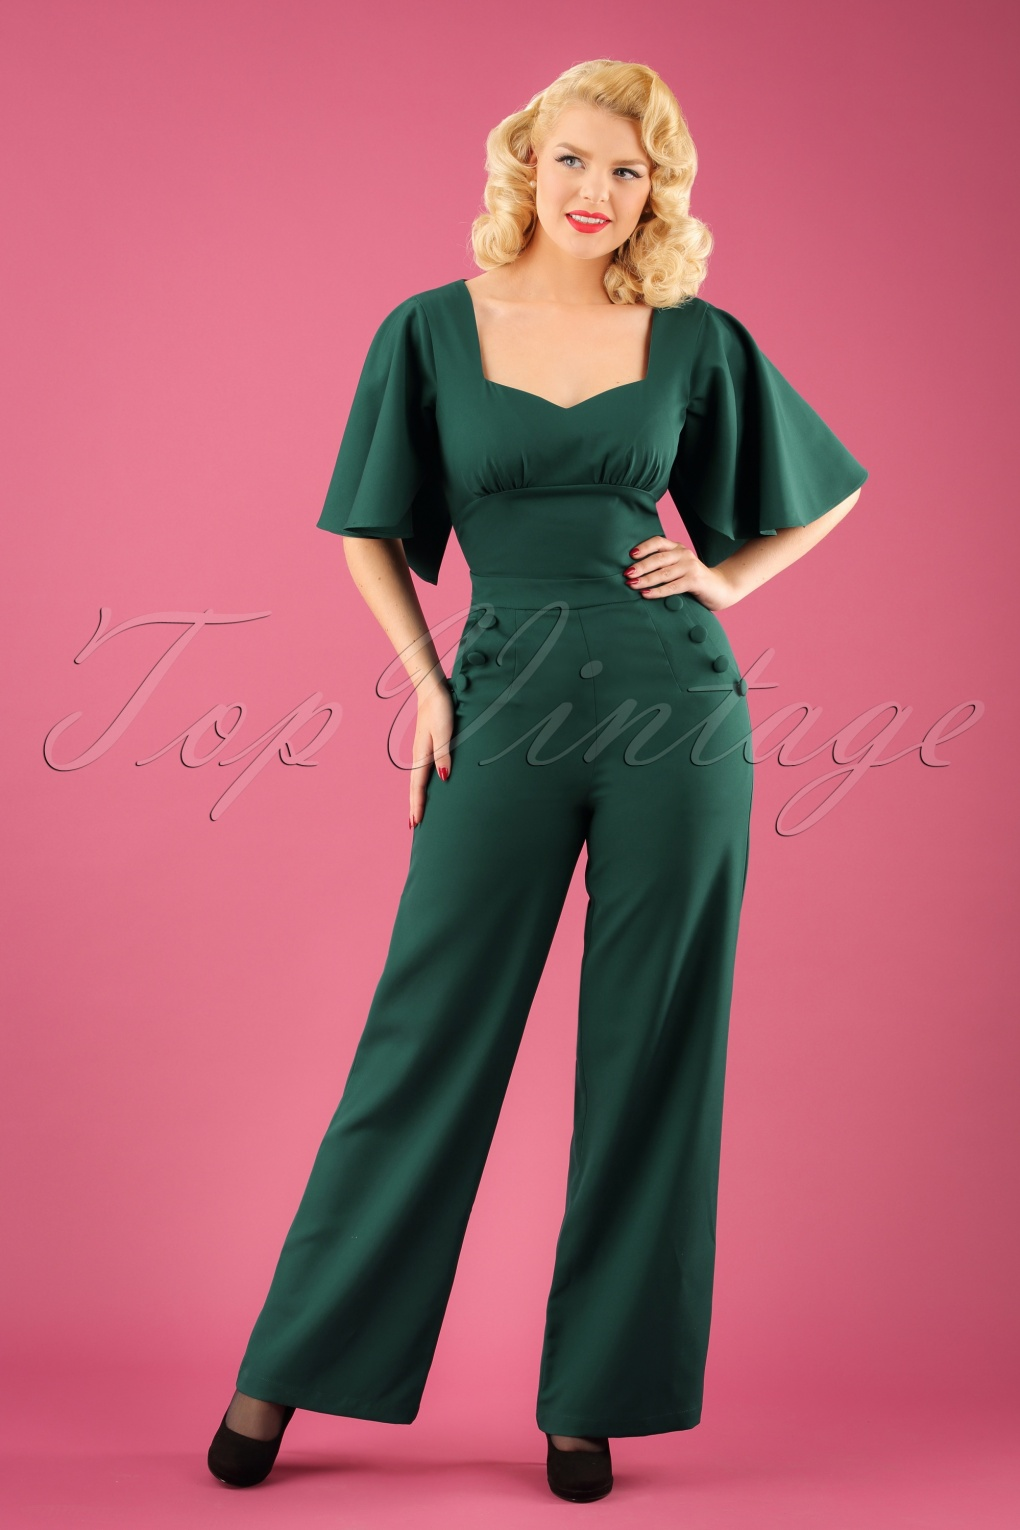 Vintage High Waisted Trousers, Sailor Pants, Jeans 40s Esmeralda Cape Jumpsuit in Teal Green £64.89 AT vintagedancer.com